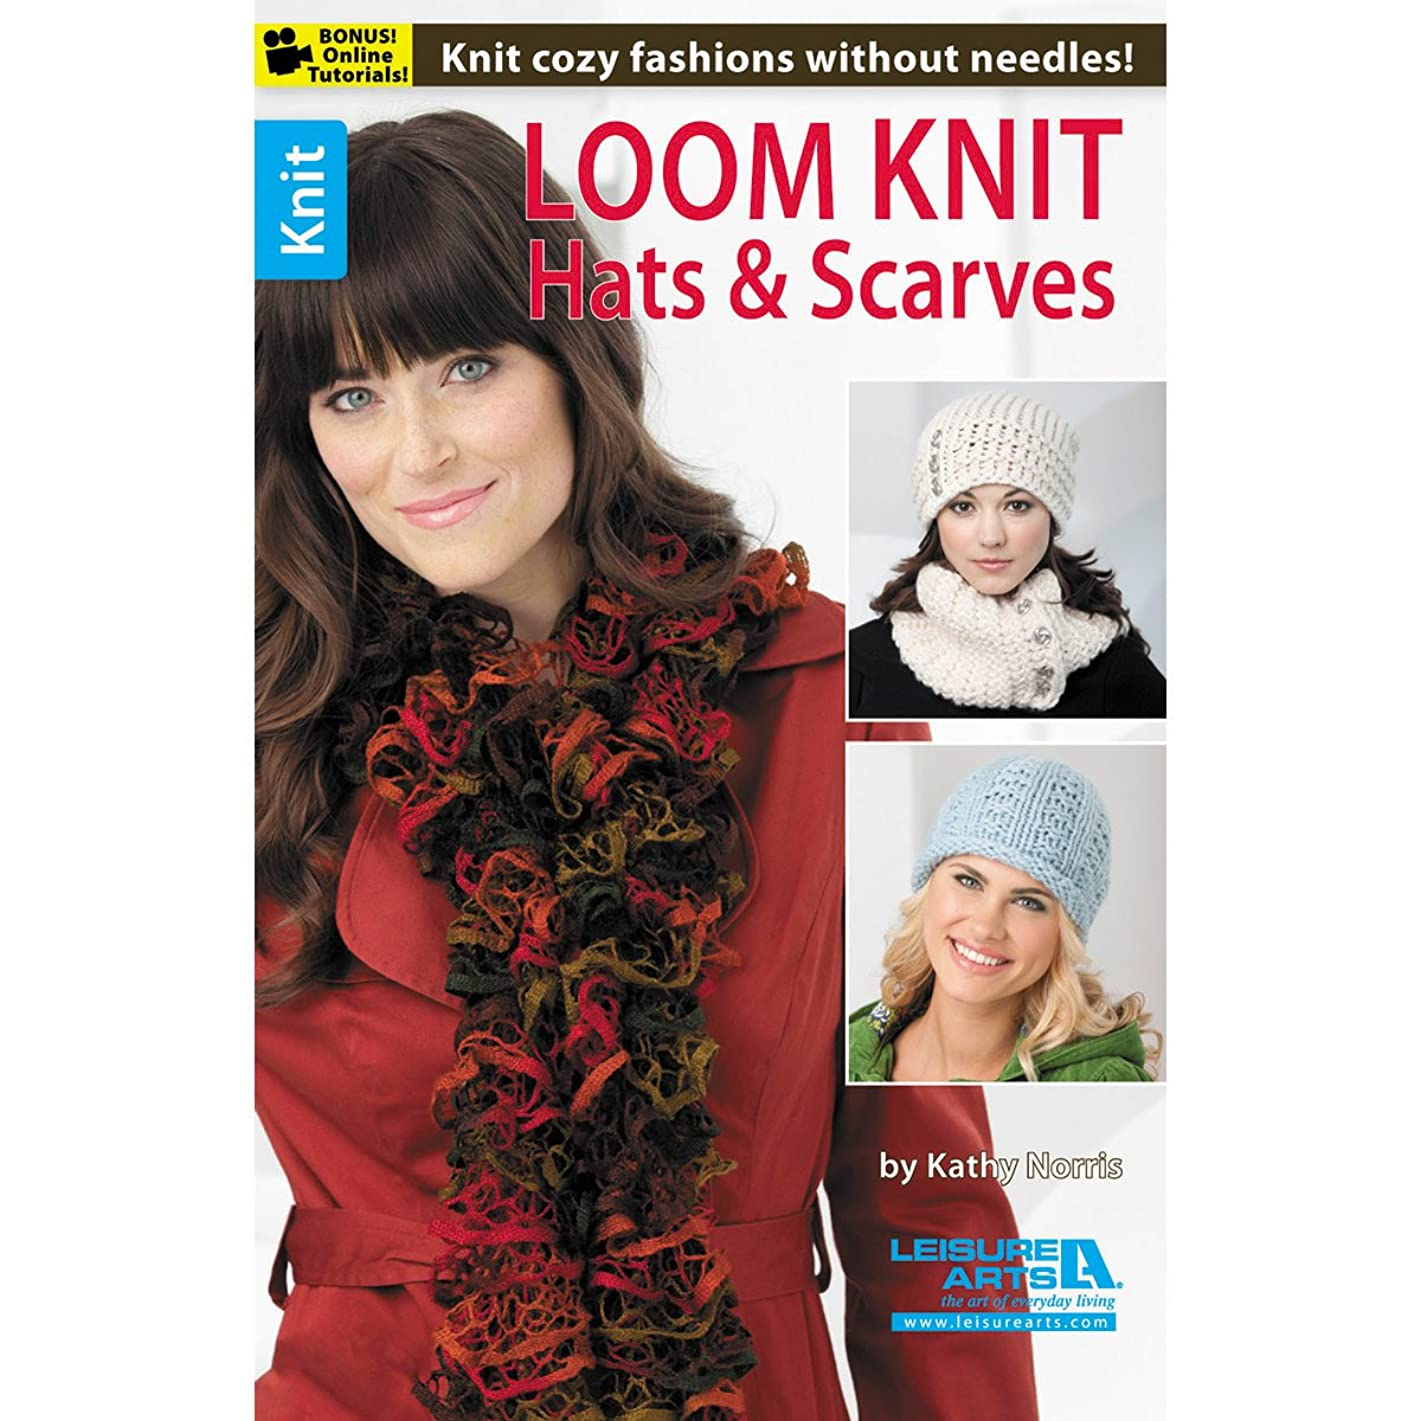 LEISURE ARTS Loom Knit Hats and Scarves Book